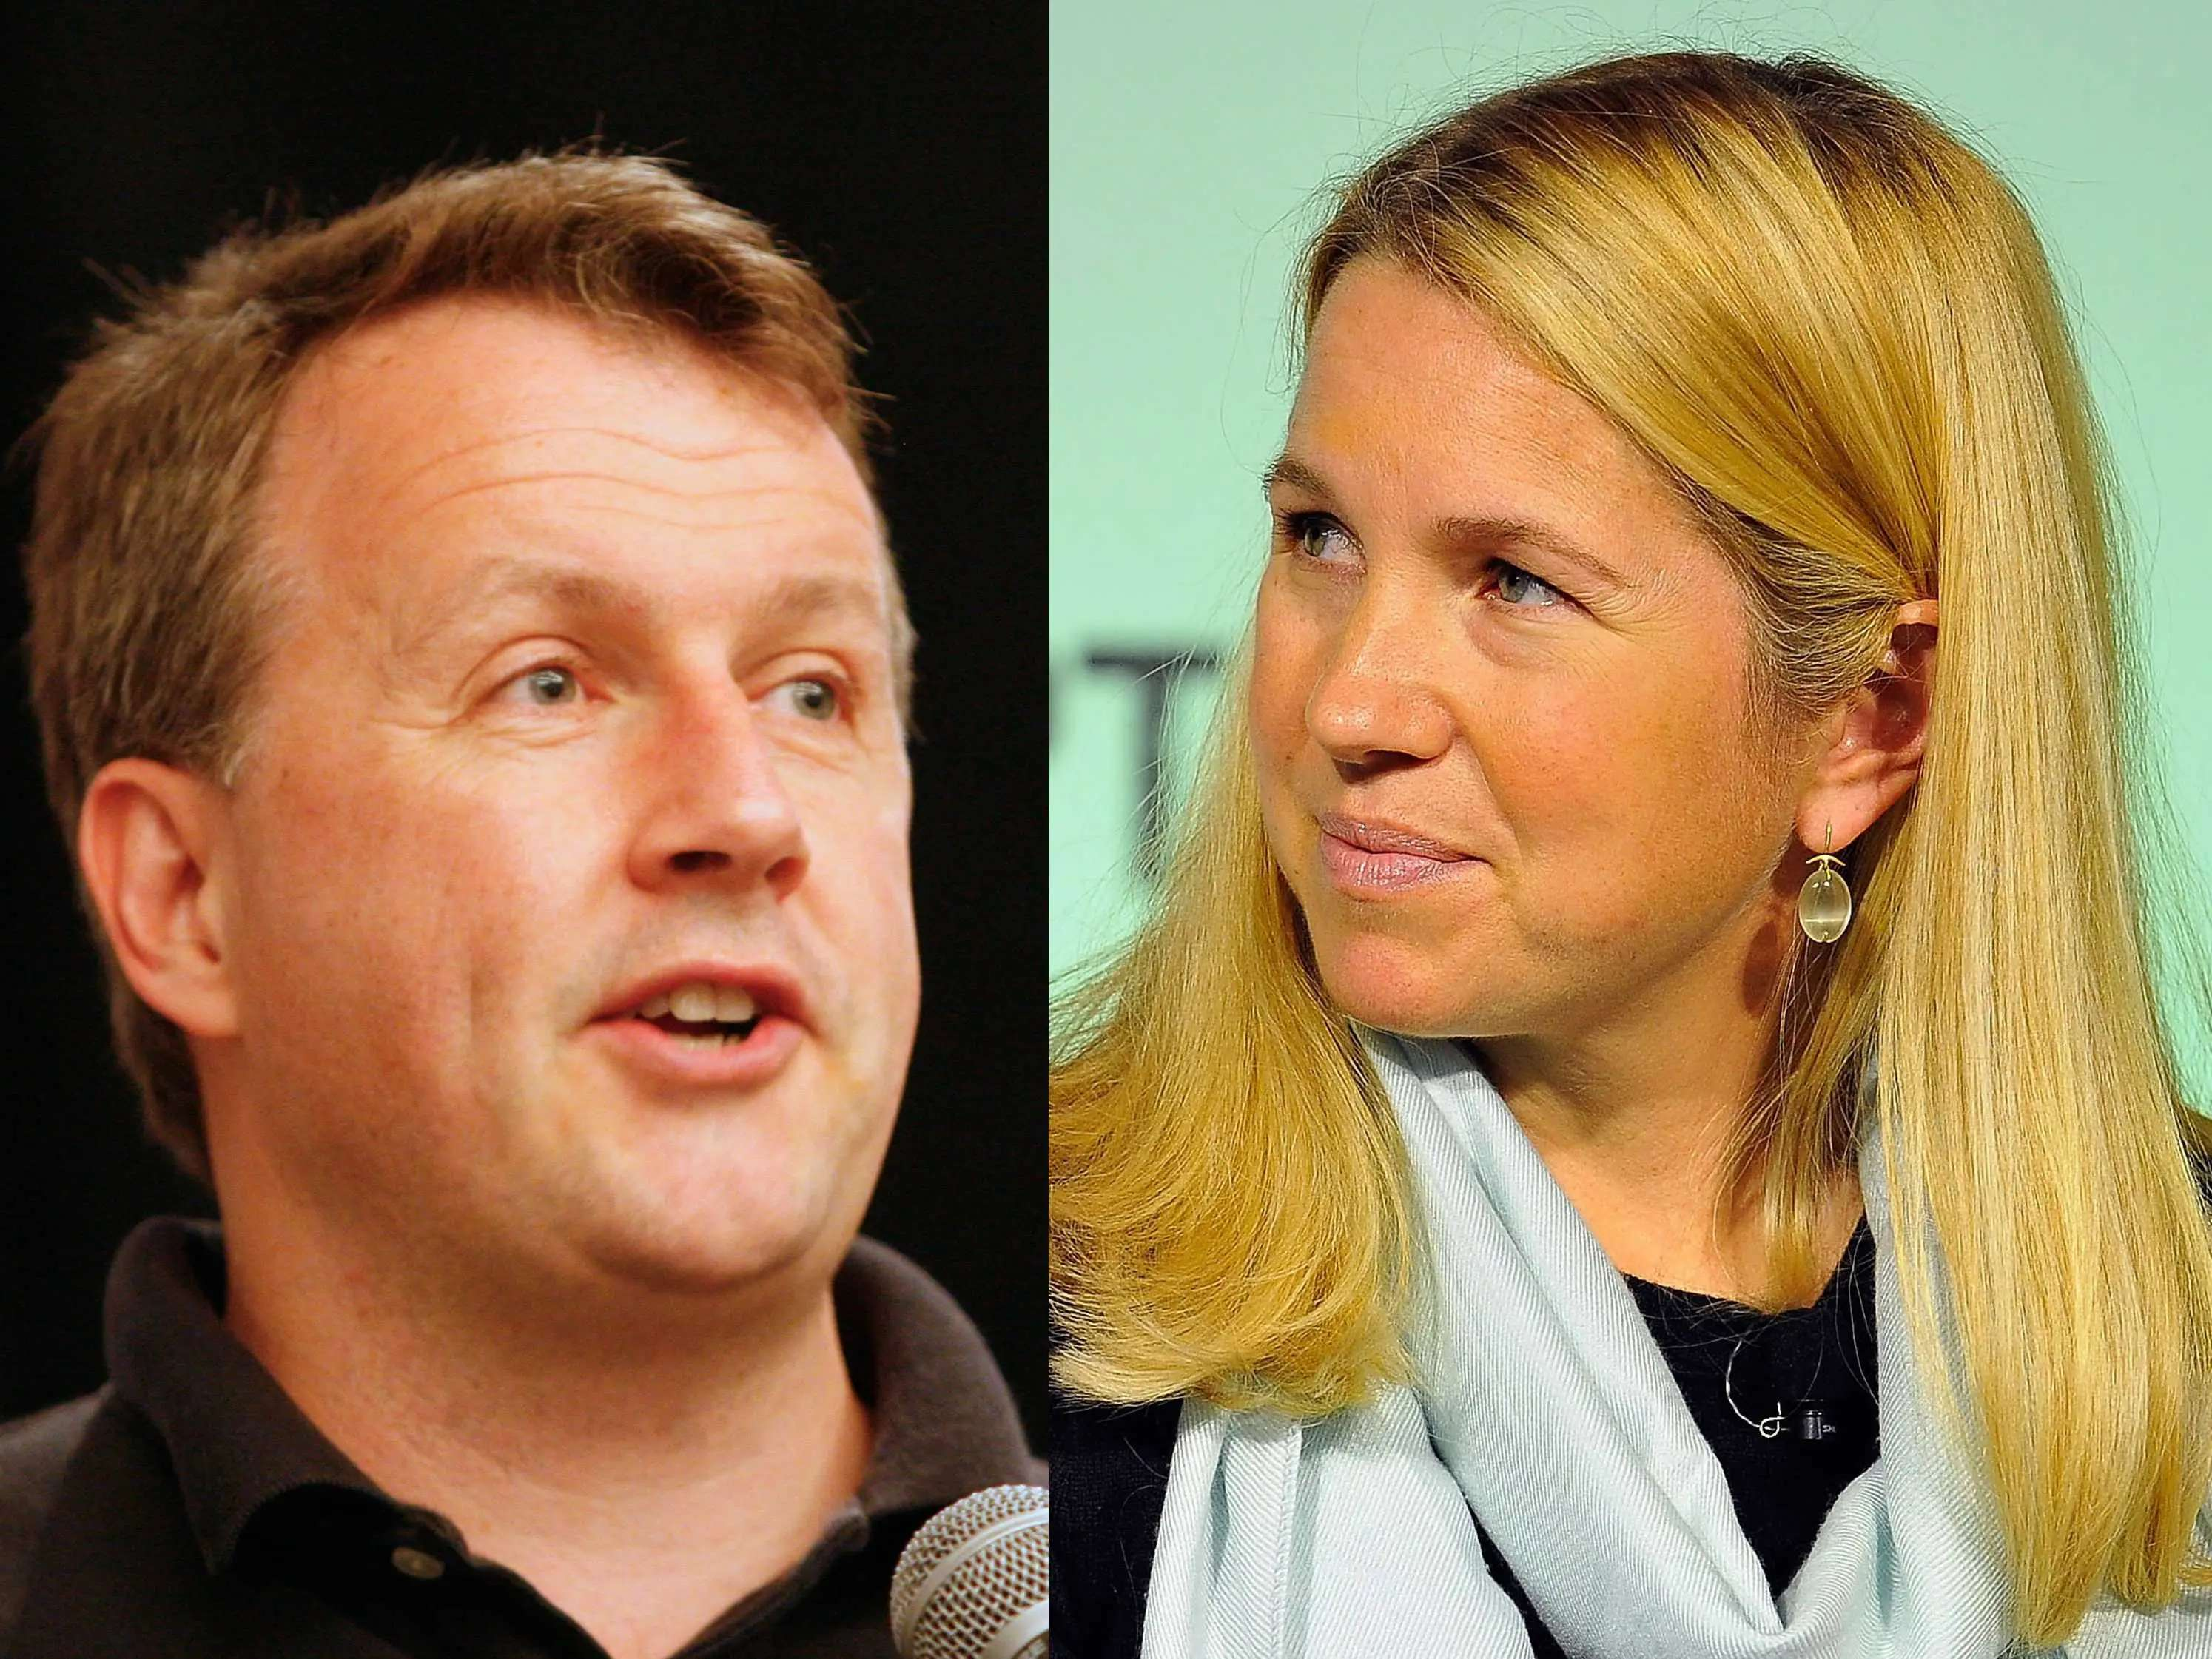 Paul Graham and Jessica Livingston came up with the idea for Y Combinator together.